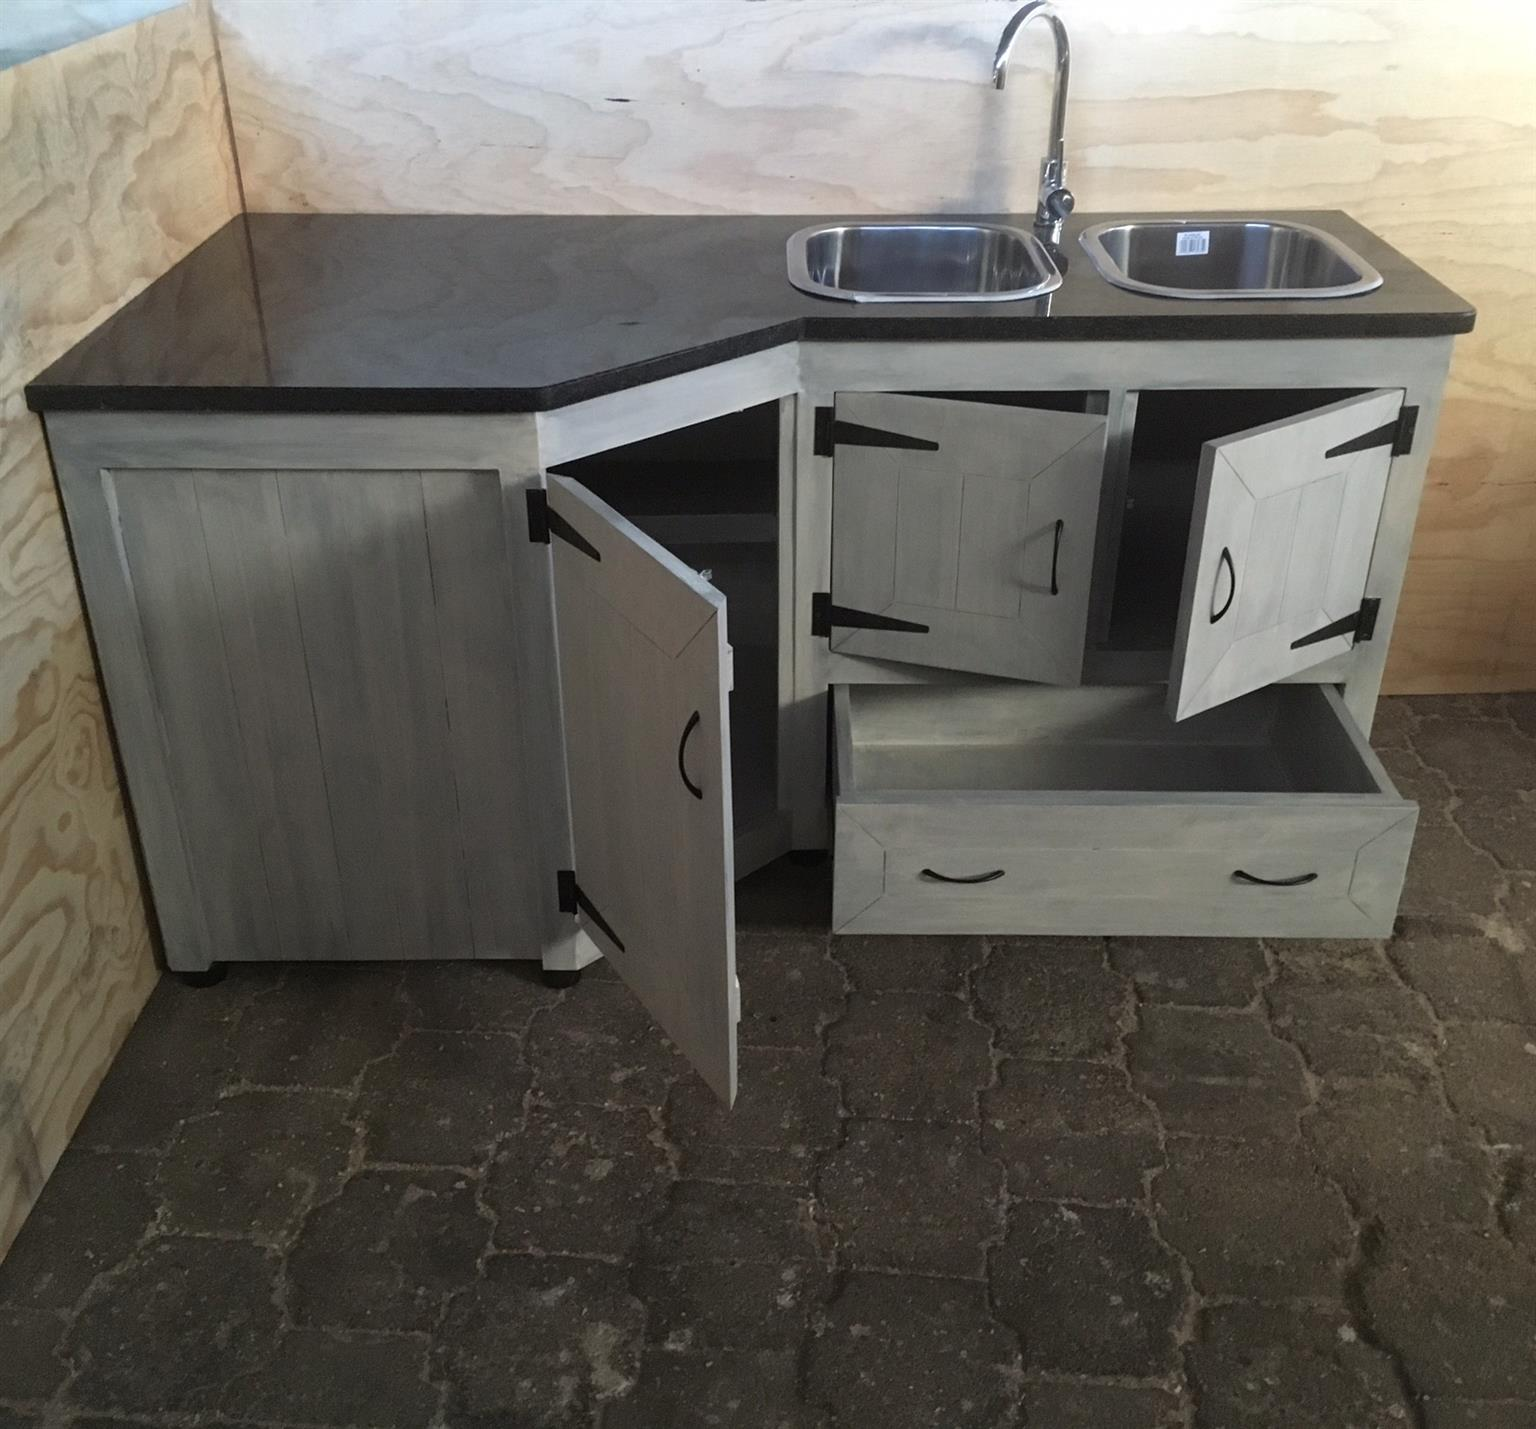 Kitchen Sink Units South Africa: Kitchen Cupboard Scullery Unit Farmhouse Series 1800 L